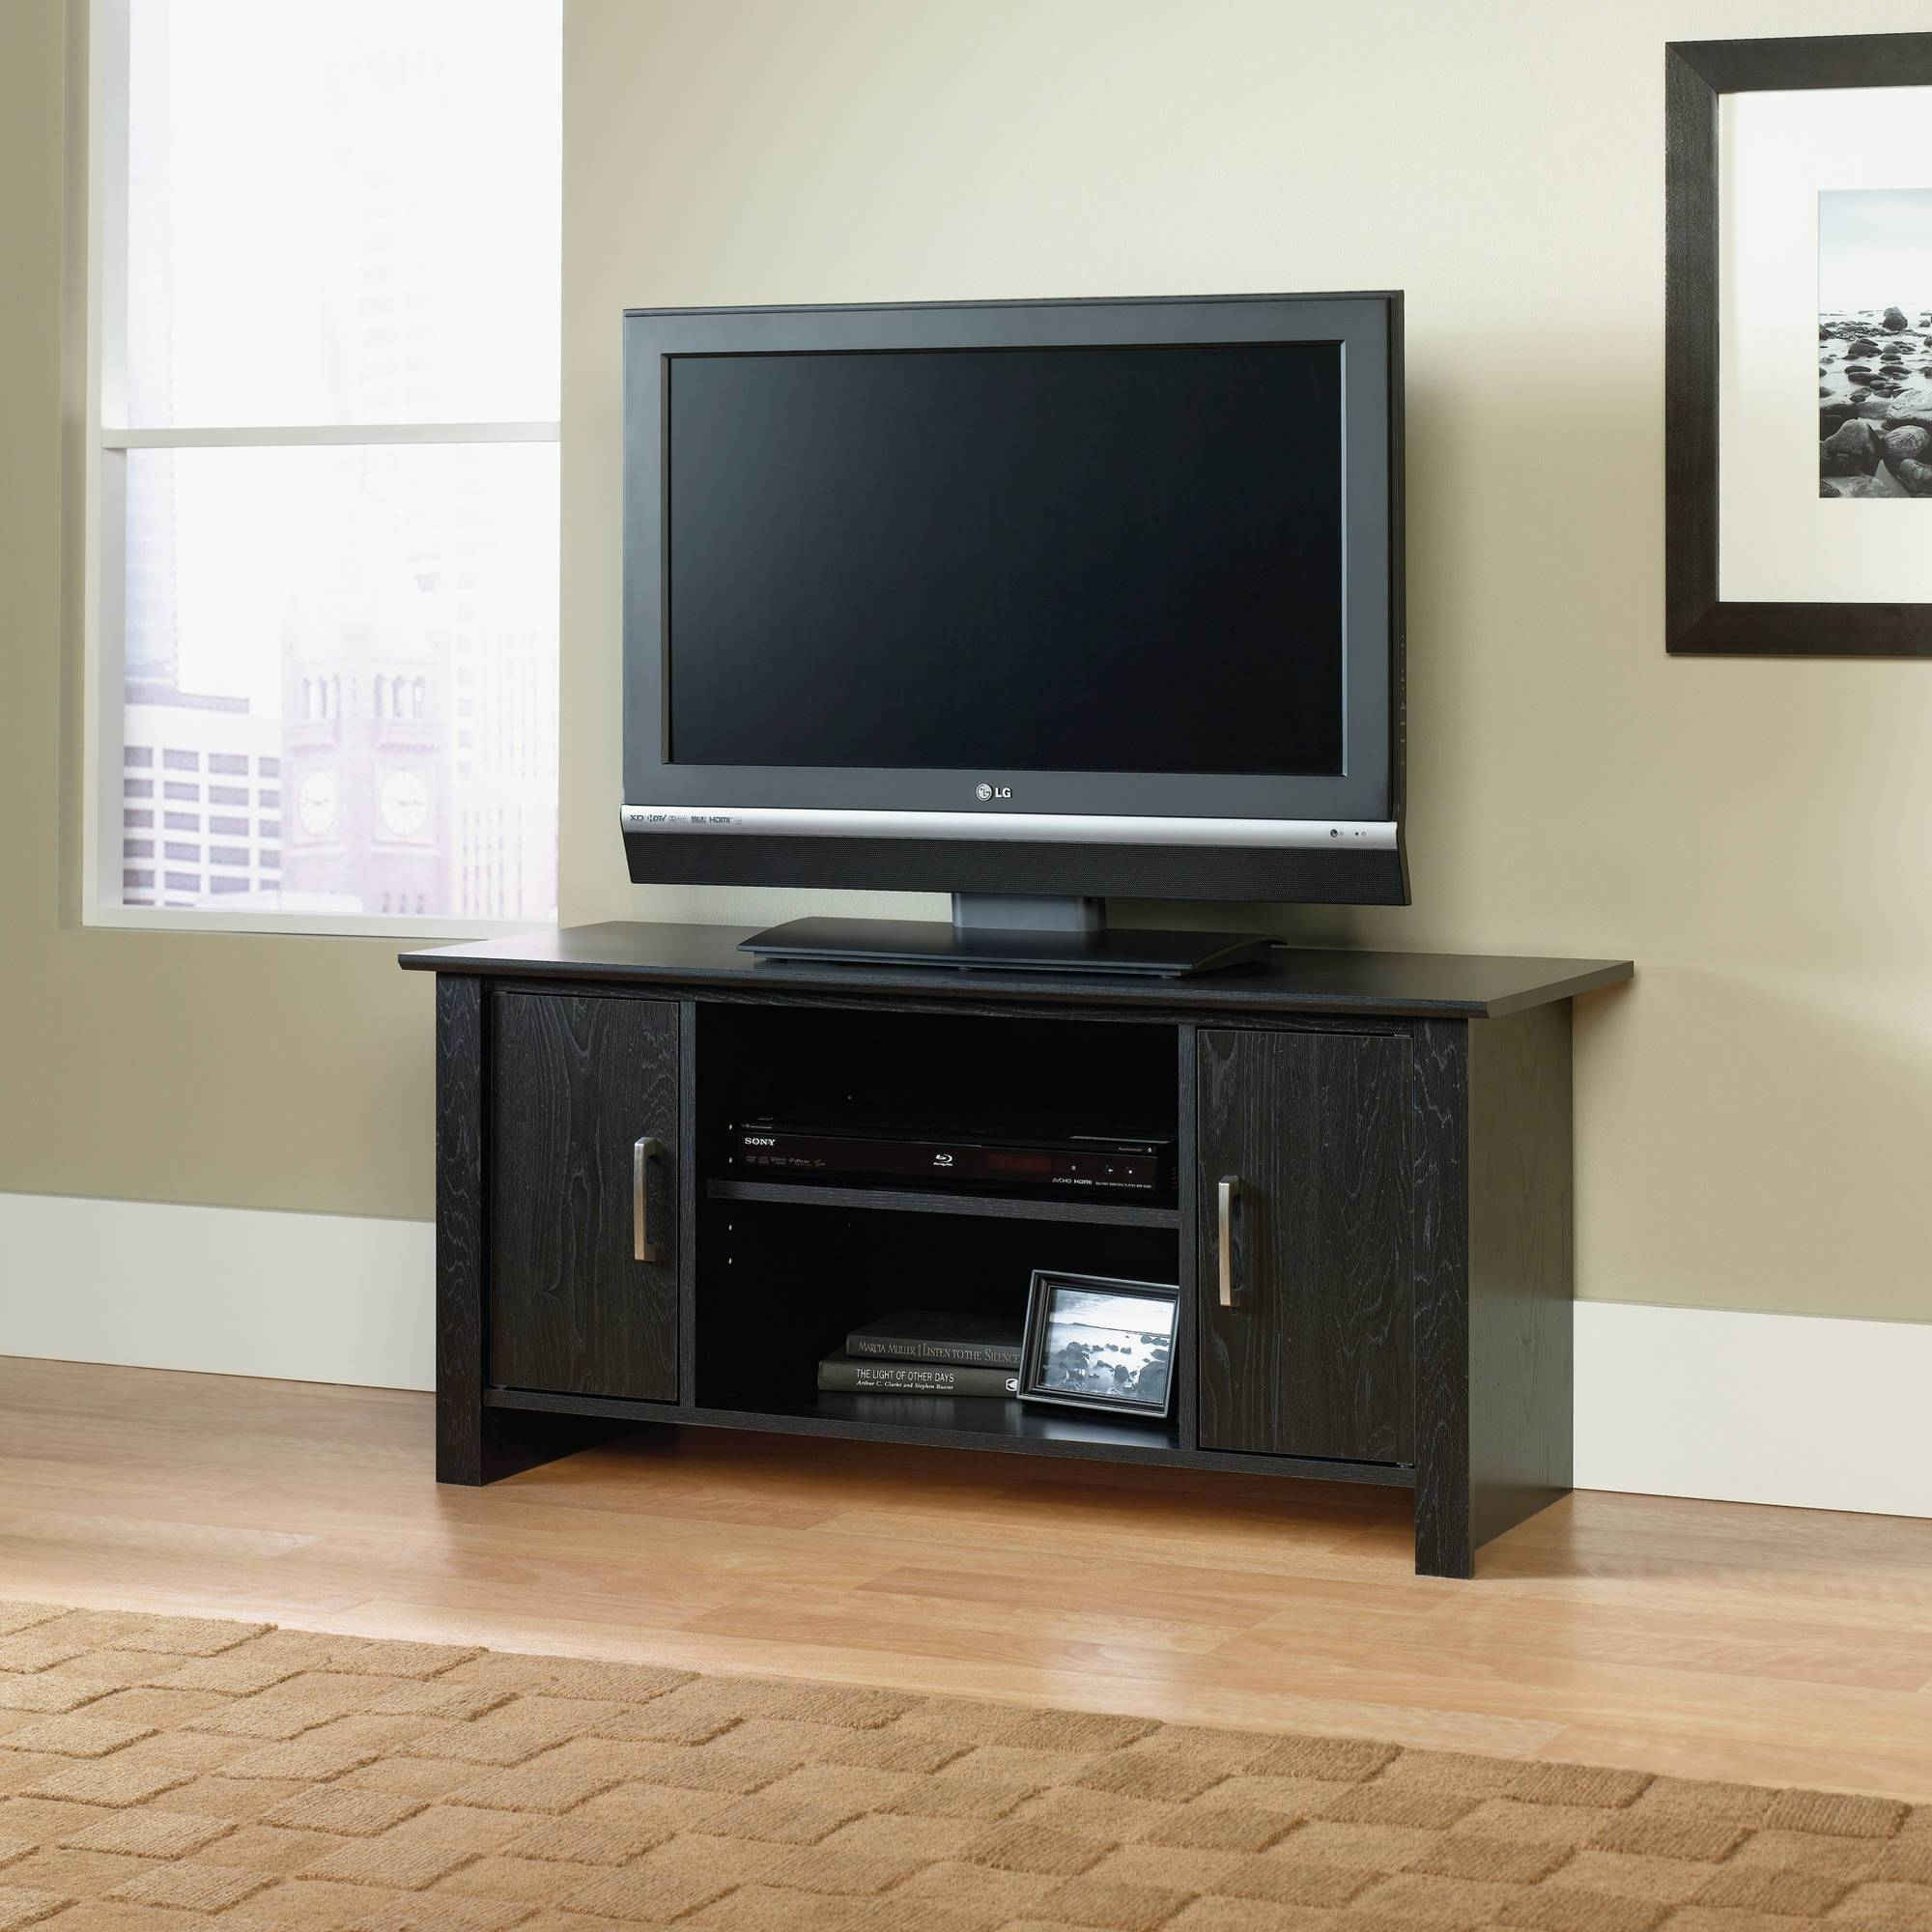 Corner Tv Stands - Walmart throughout Corner Tv Cabinets For Flat Screens With Doors (Image 4 of 15)